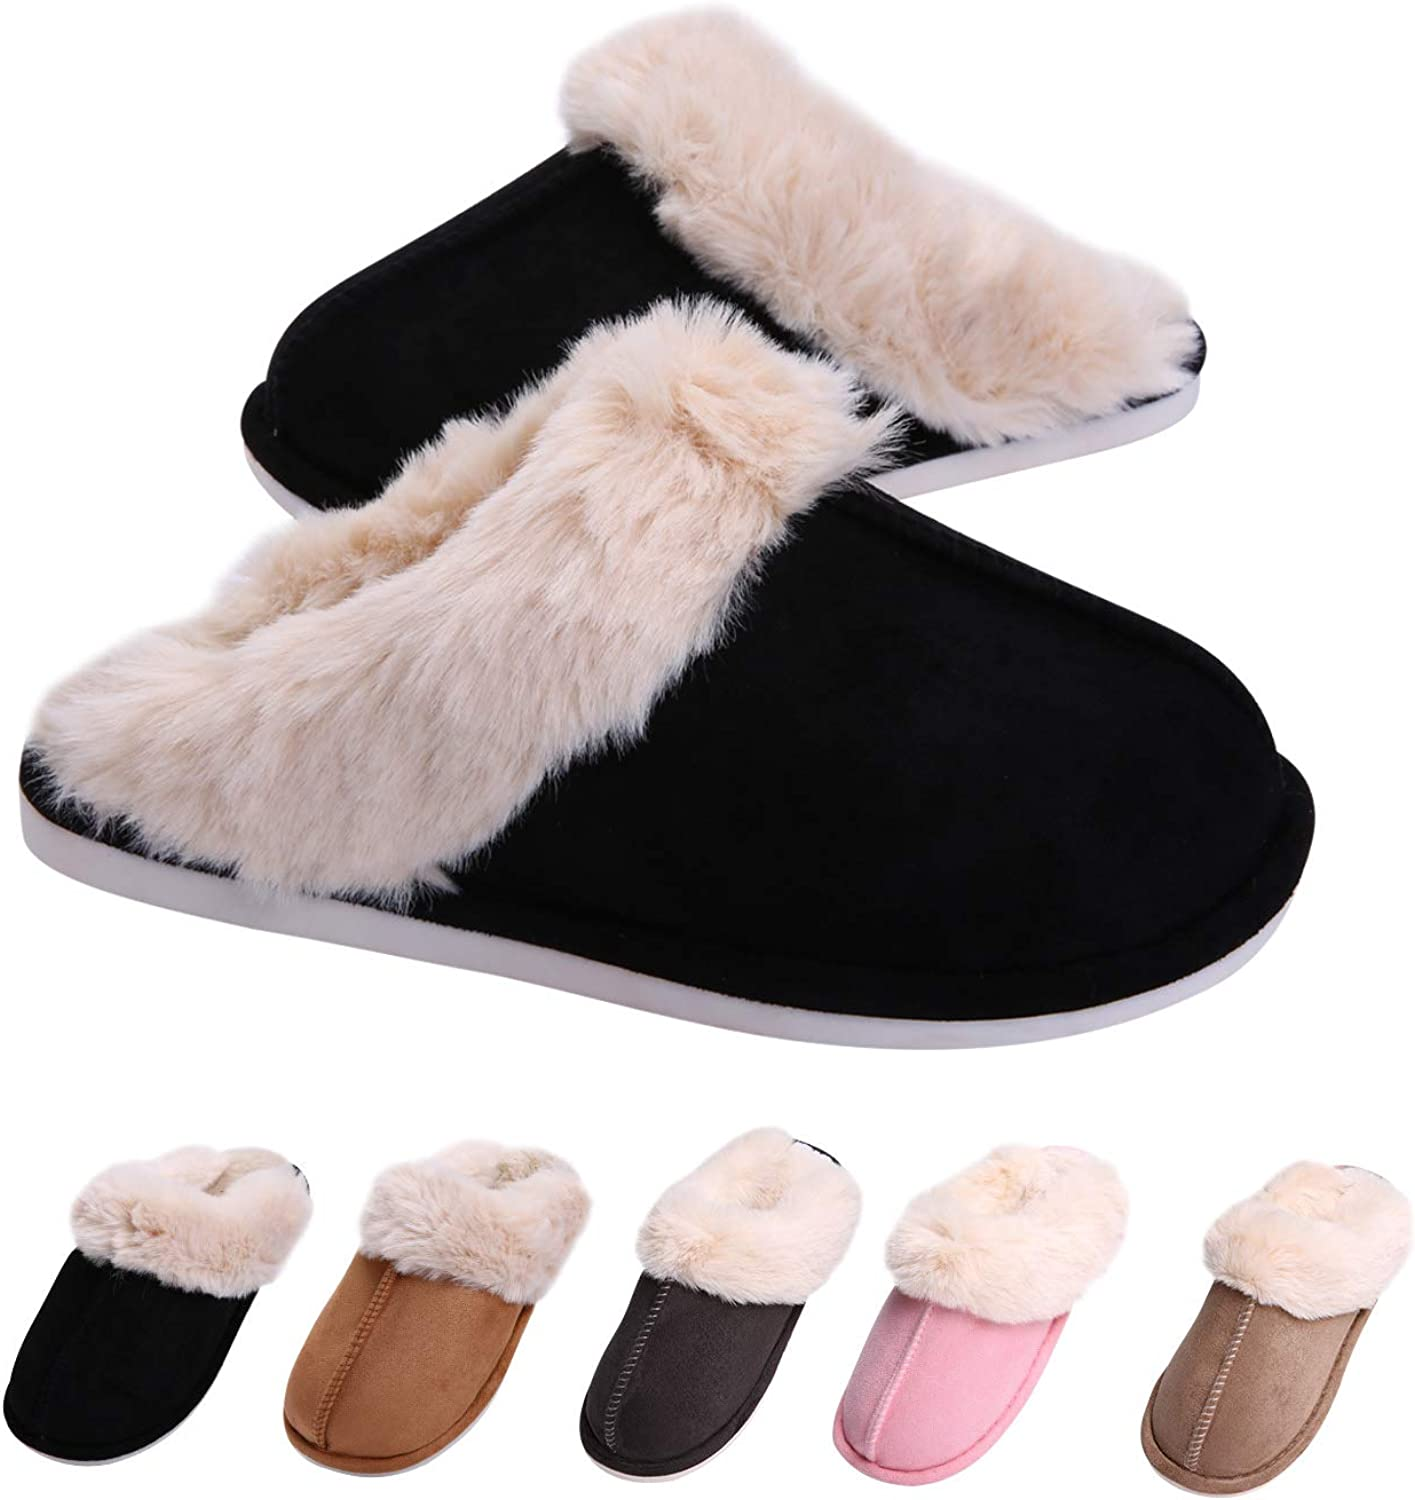 Women's and Men's House Slippers Memory Fo Warm Bedroom Overseas parallel Baltimore Mall import regular item